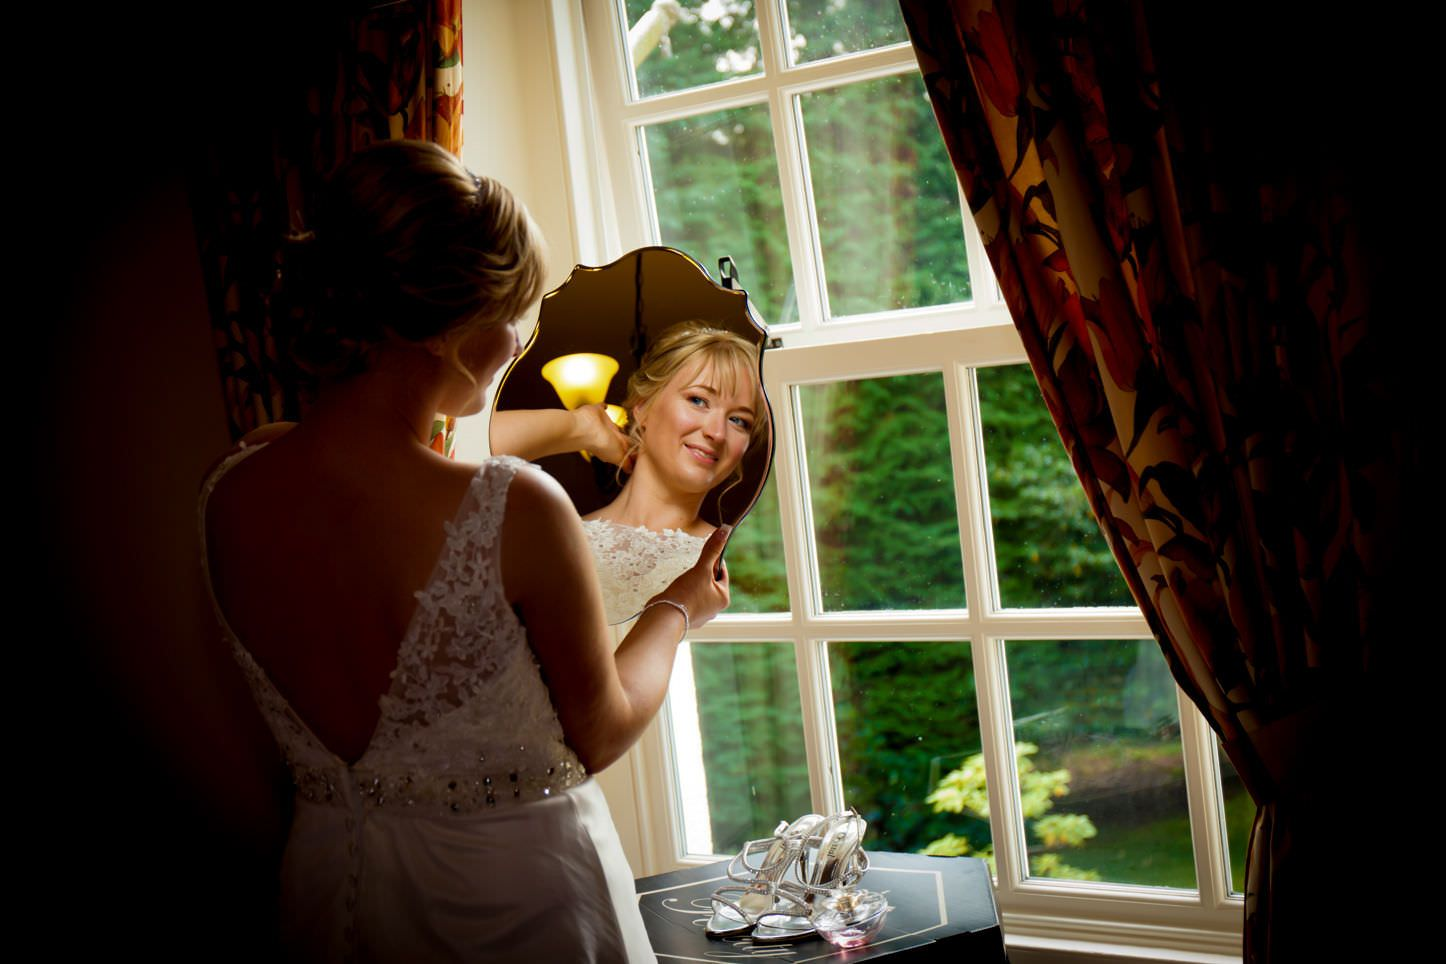 Weddings, beautiful bride by the window, bridal portraits, wedding images